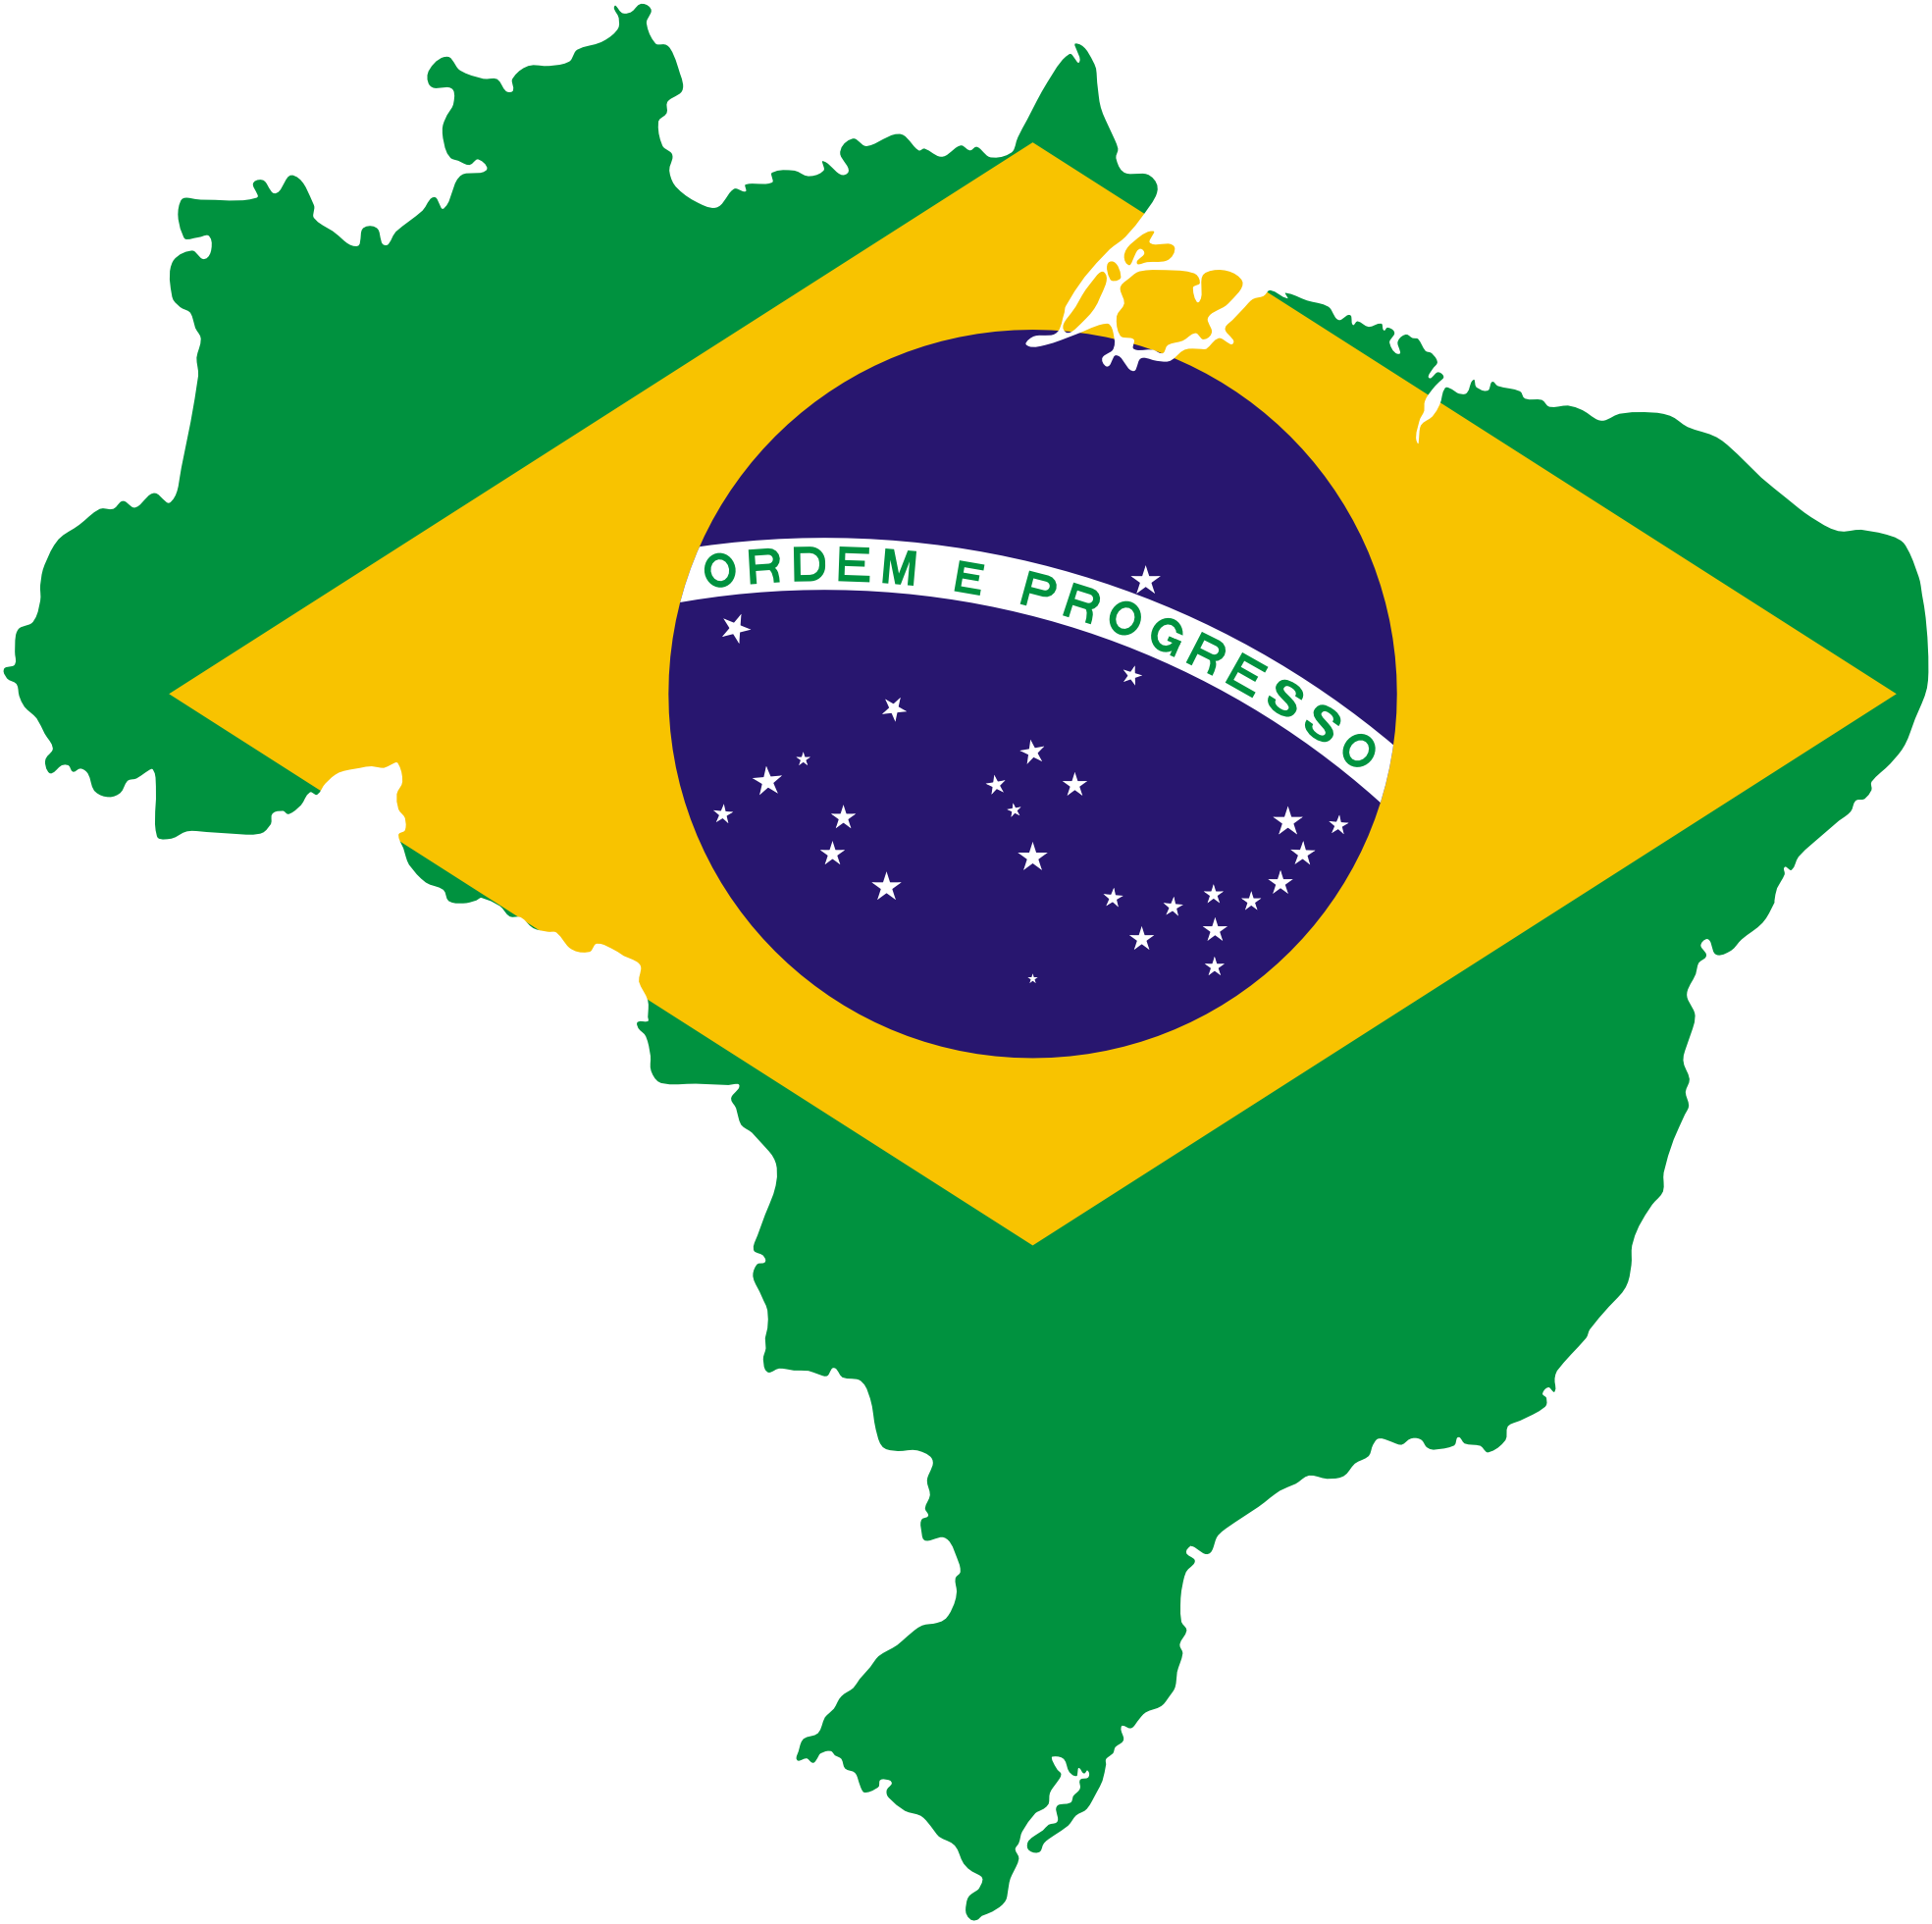 coloring pages flag brazil - photo#29